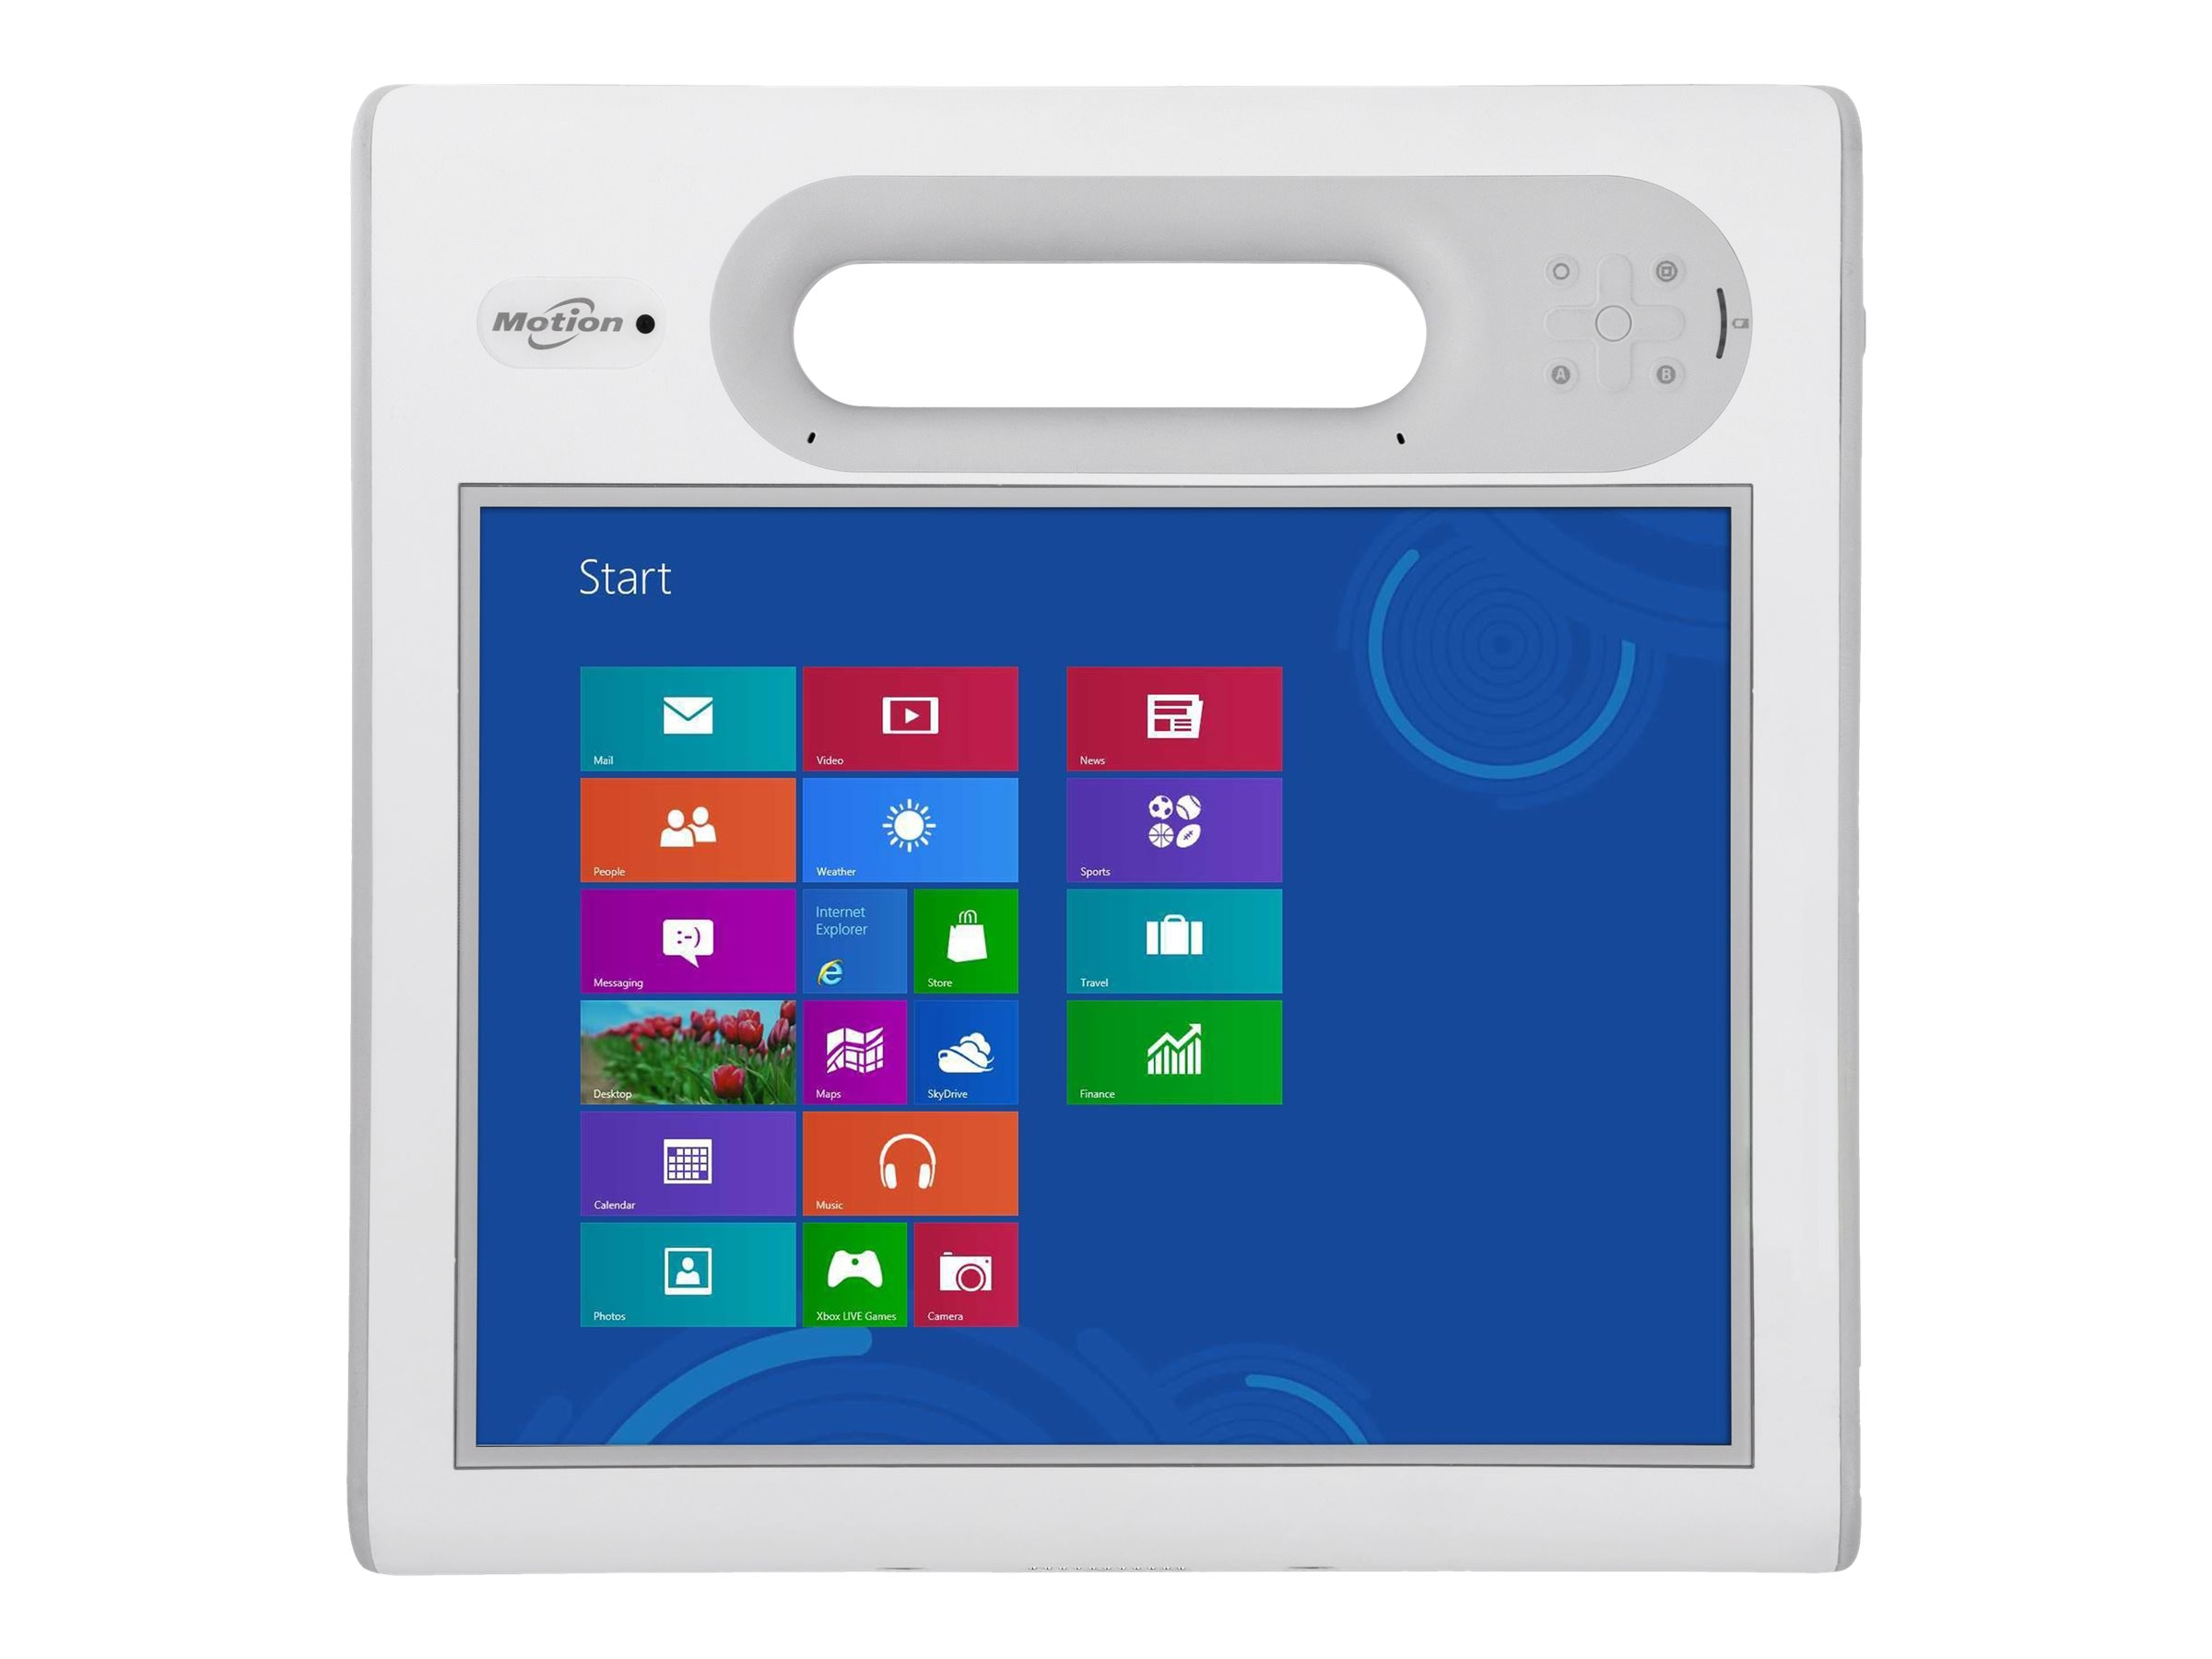 Motion C5m Core i3 4GB 64GB SSD WC 10.4 XGA Touch W8.1P, KM423442822343, 18655654, Tablets